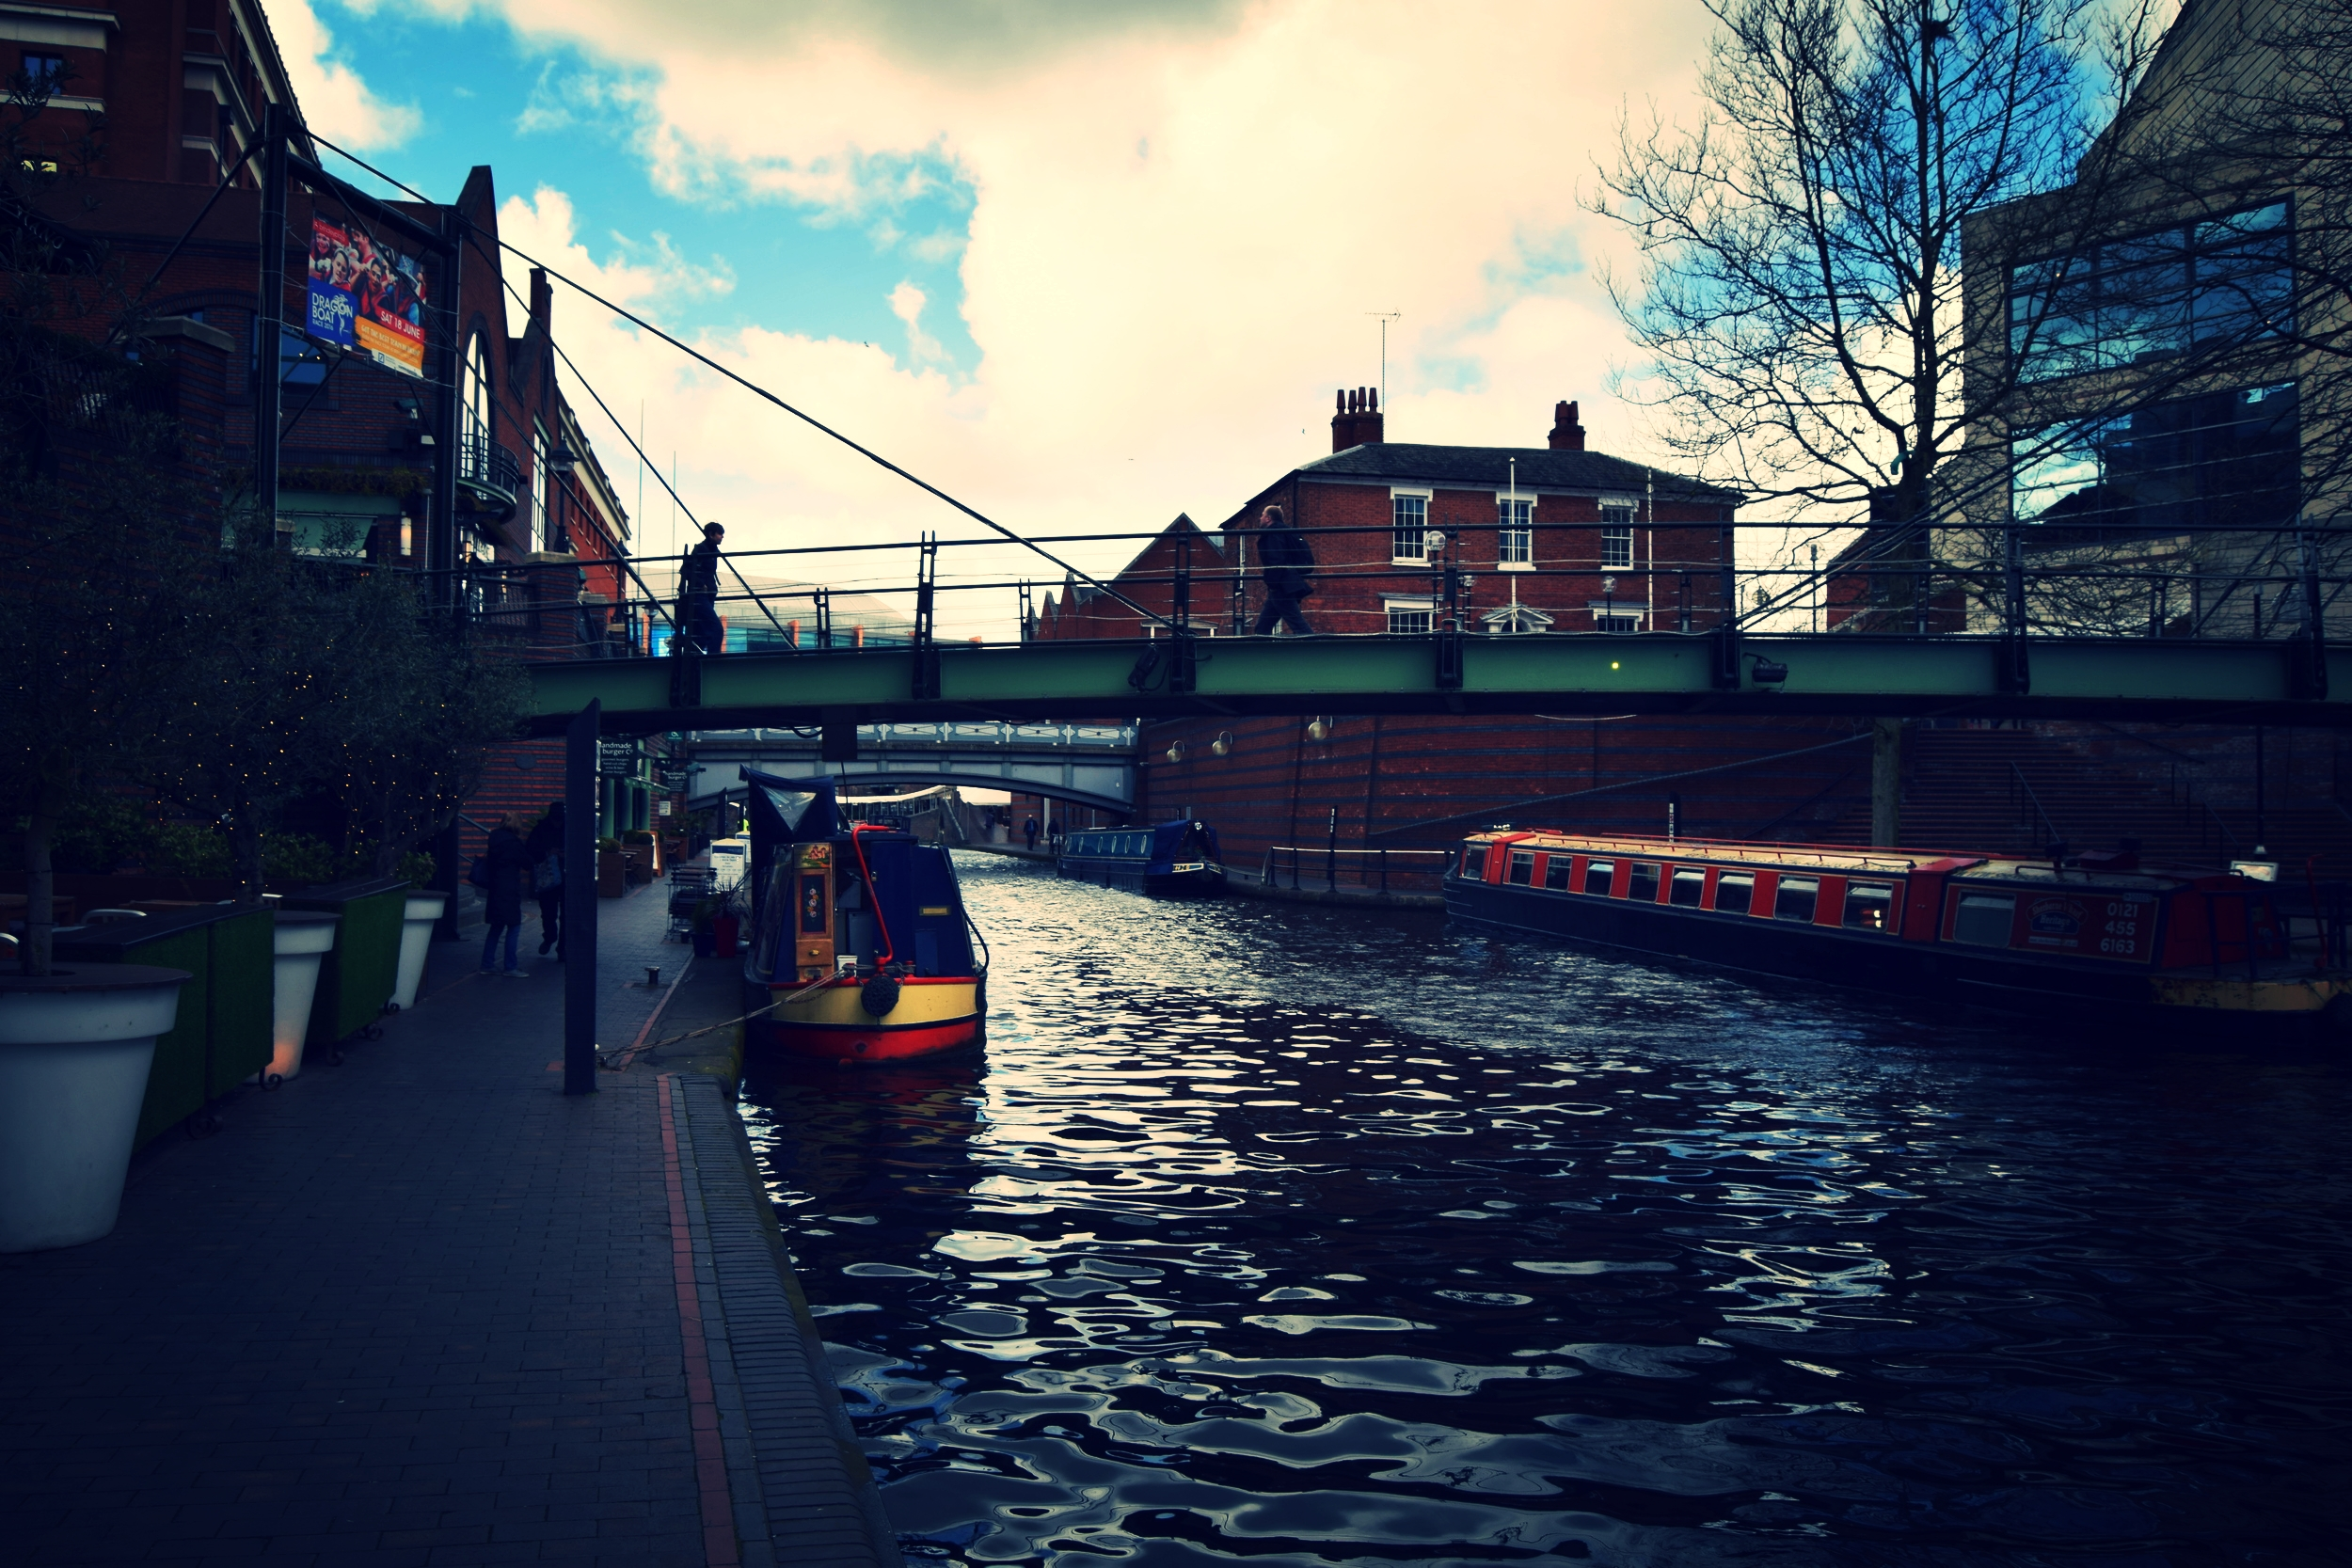 Explore the streets and canals of Birmingham